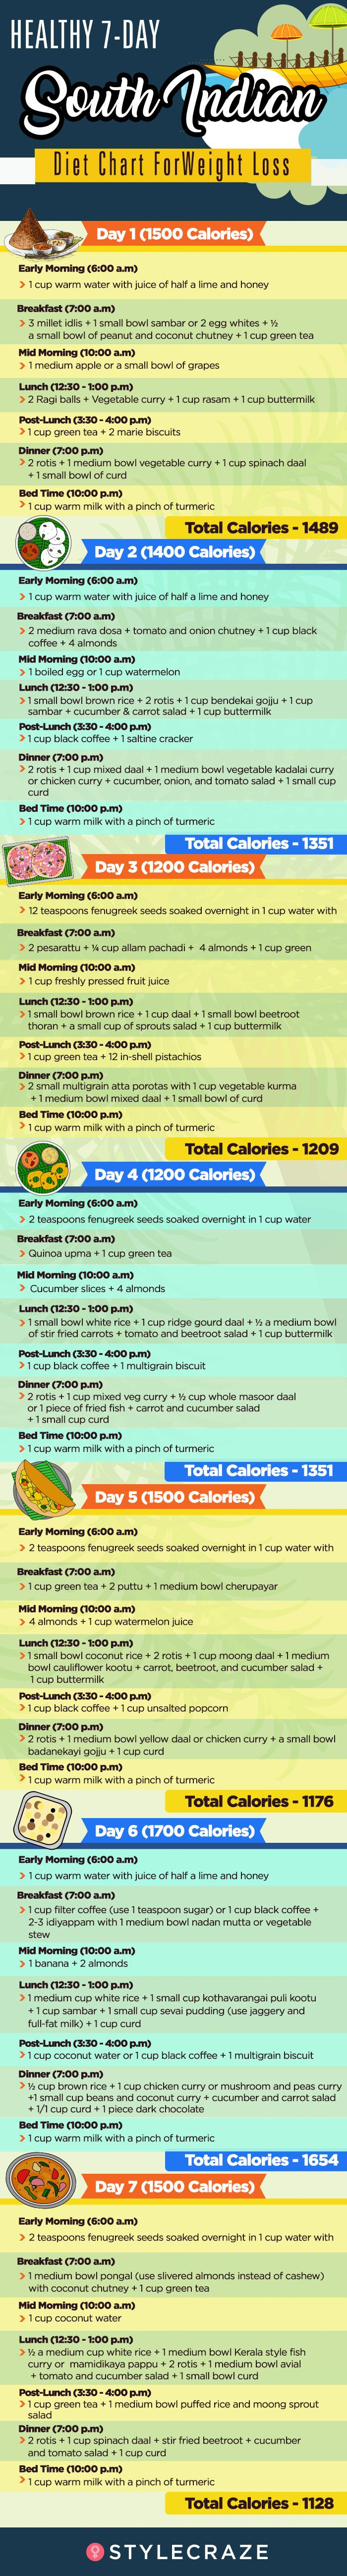 Healthy day south indian diet chart for weight loss southindian weightloss weightlossdiet also health and rh pinterest